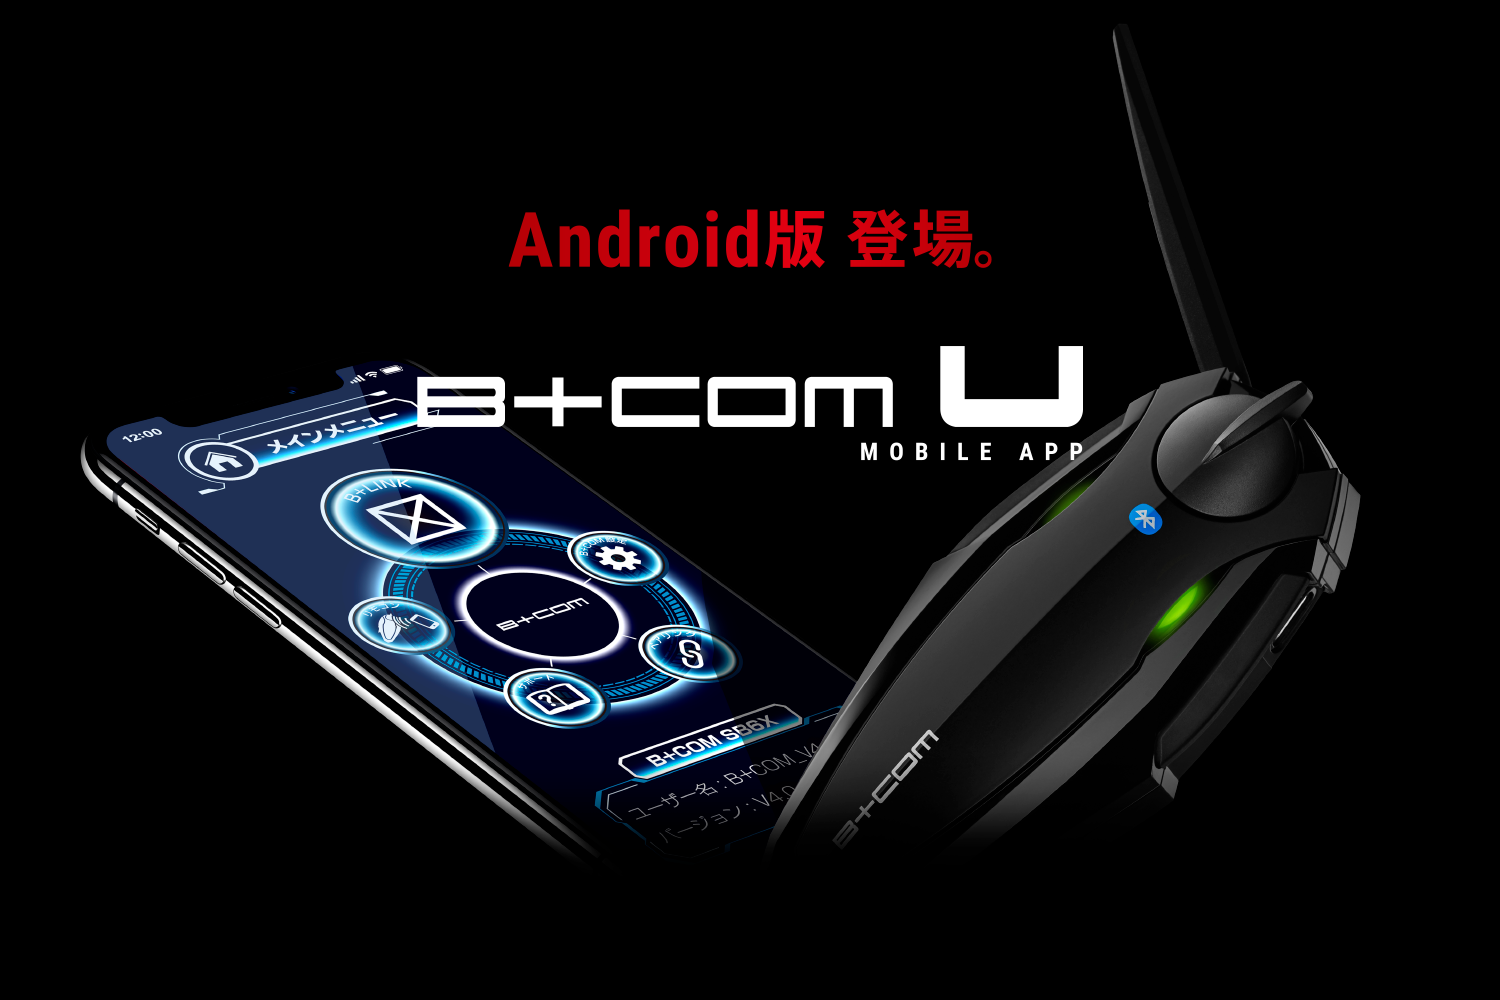 「B+COM U Mobile APP for Android」リリースのご案内